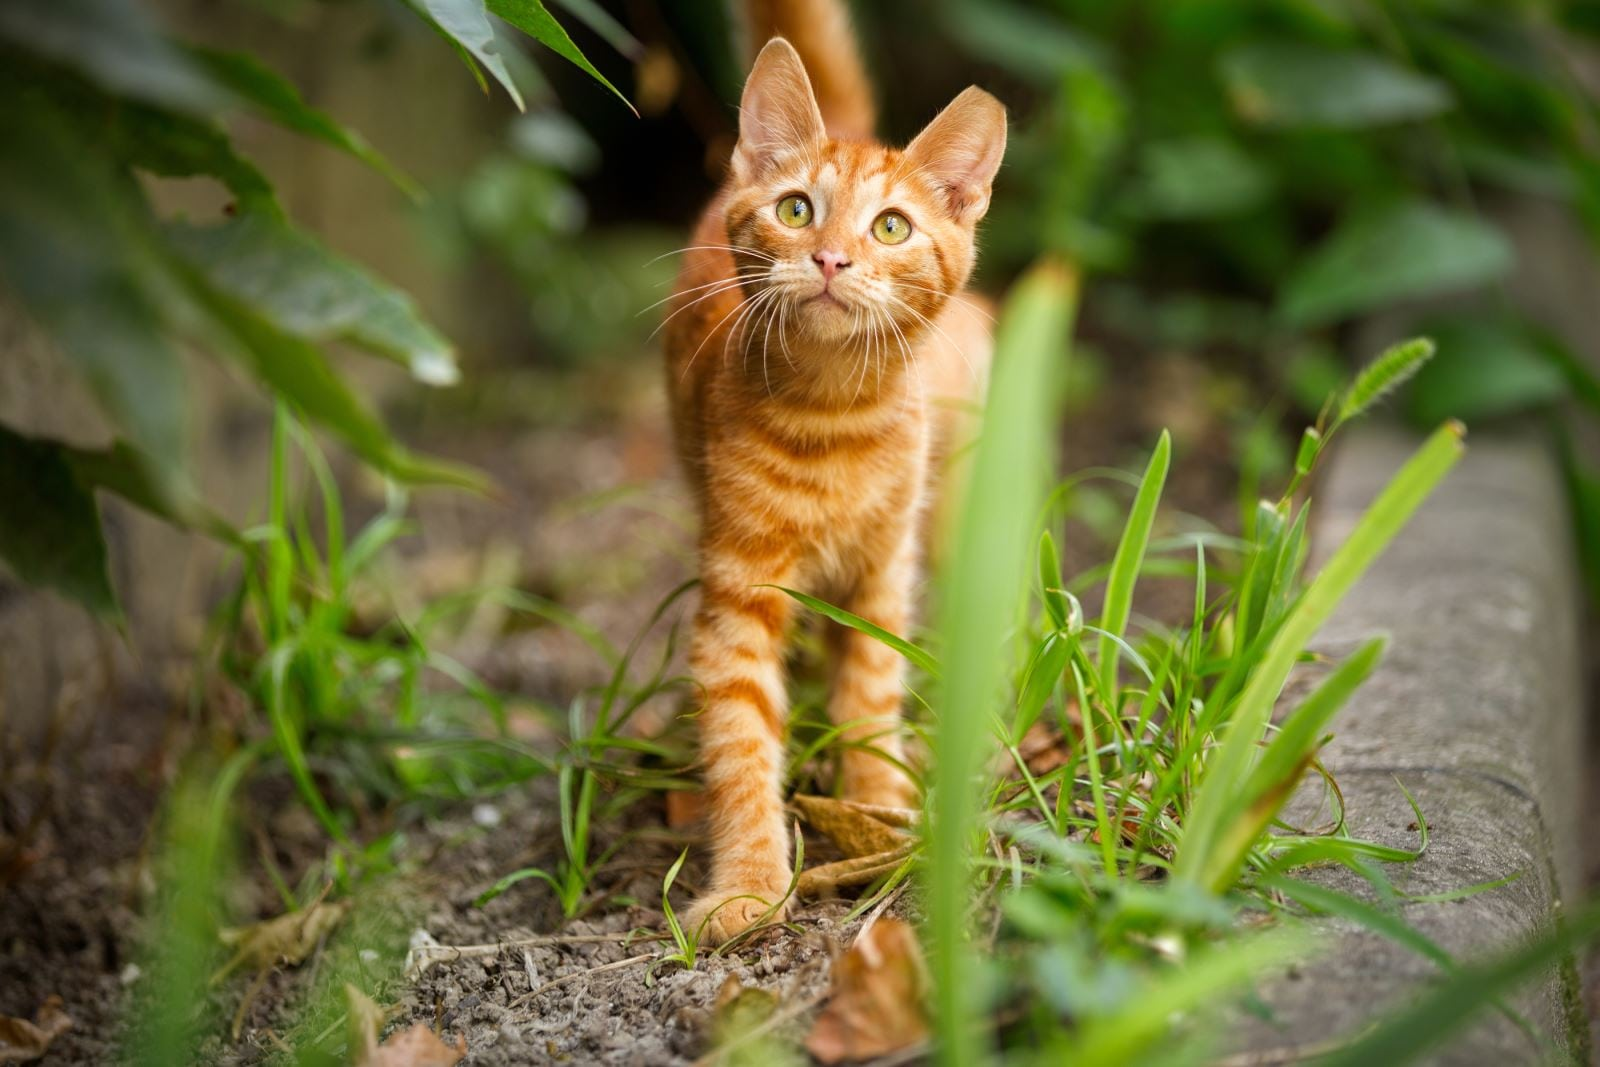 Flea and tick protection is important for cats too and Dr Cohn